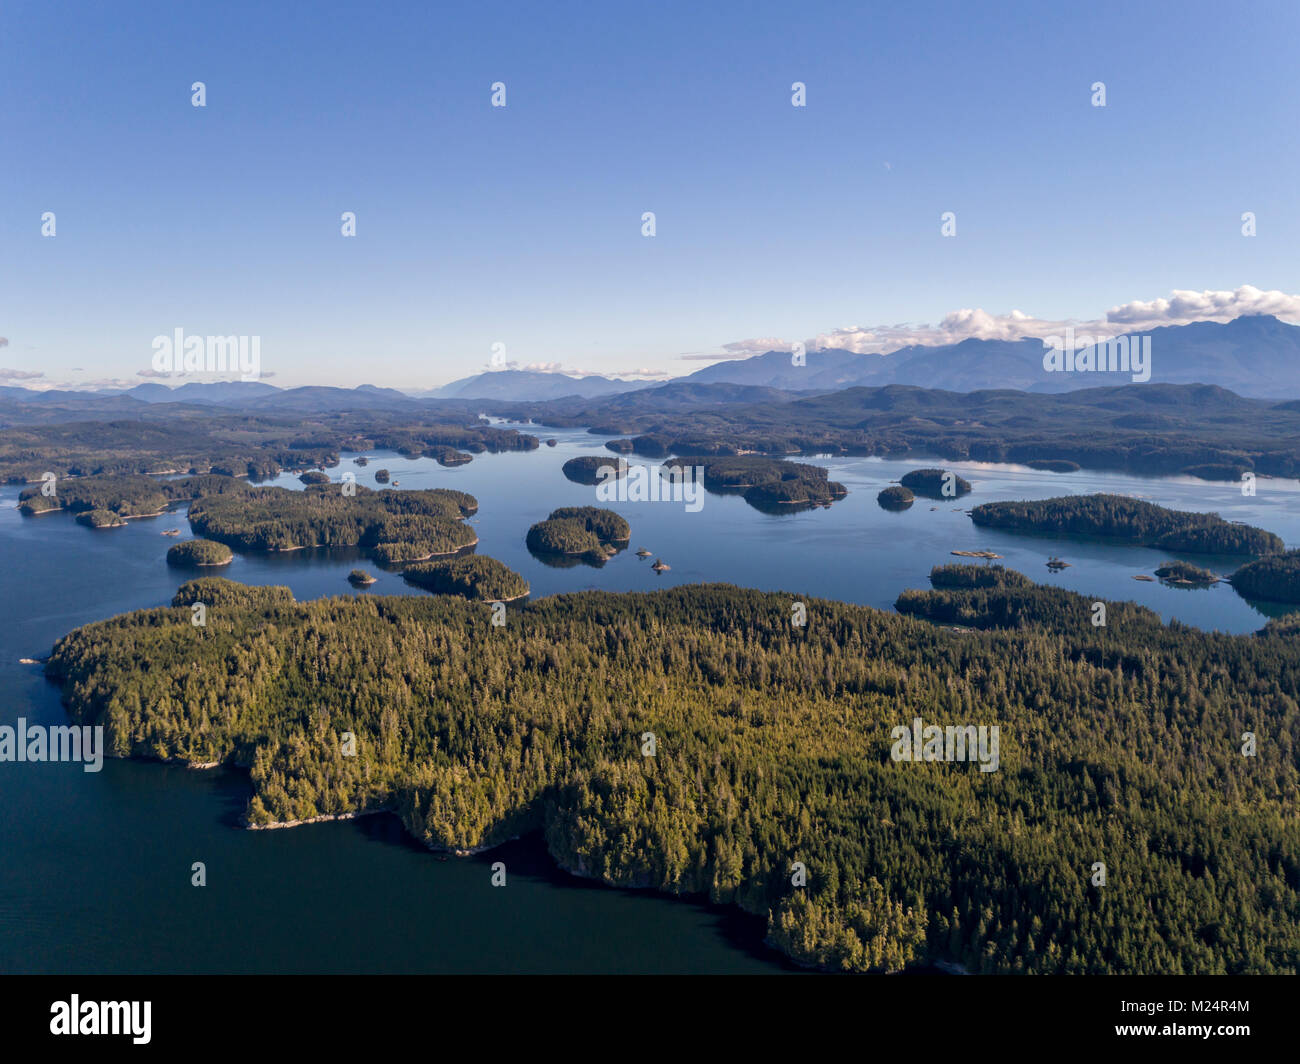 Aerial photograph of the Broughton Archipelago Marine Park, First Nations Territory, British Columbia, Canada. - Stock Image